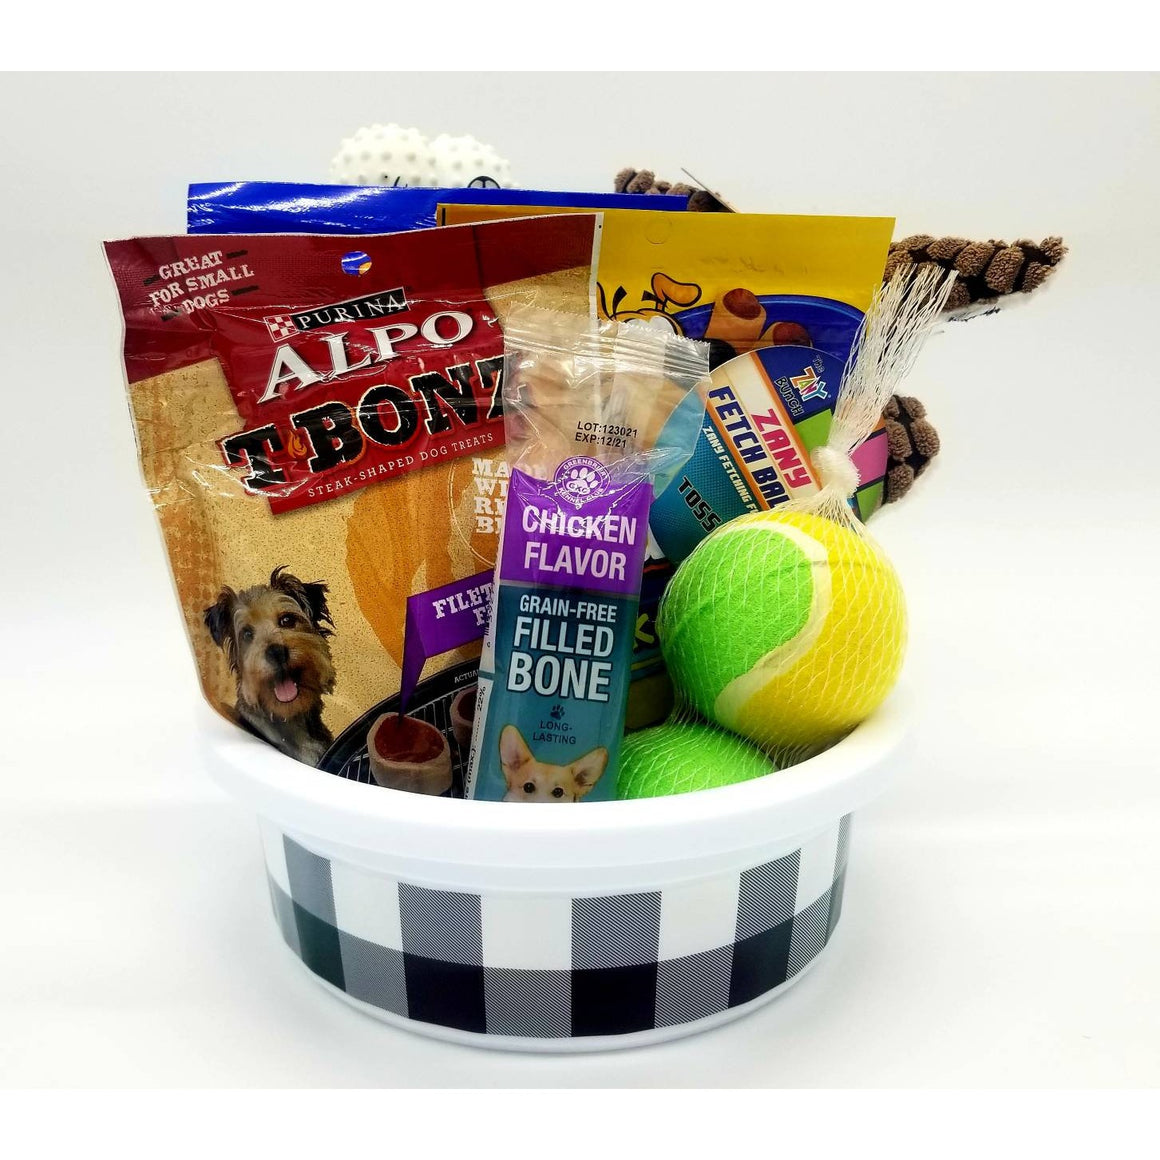 Products Groovy Gifts And Groceries